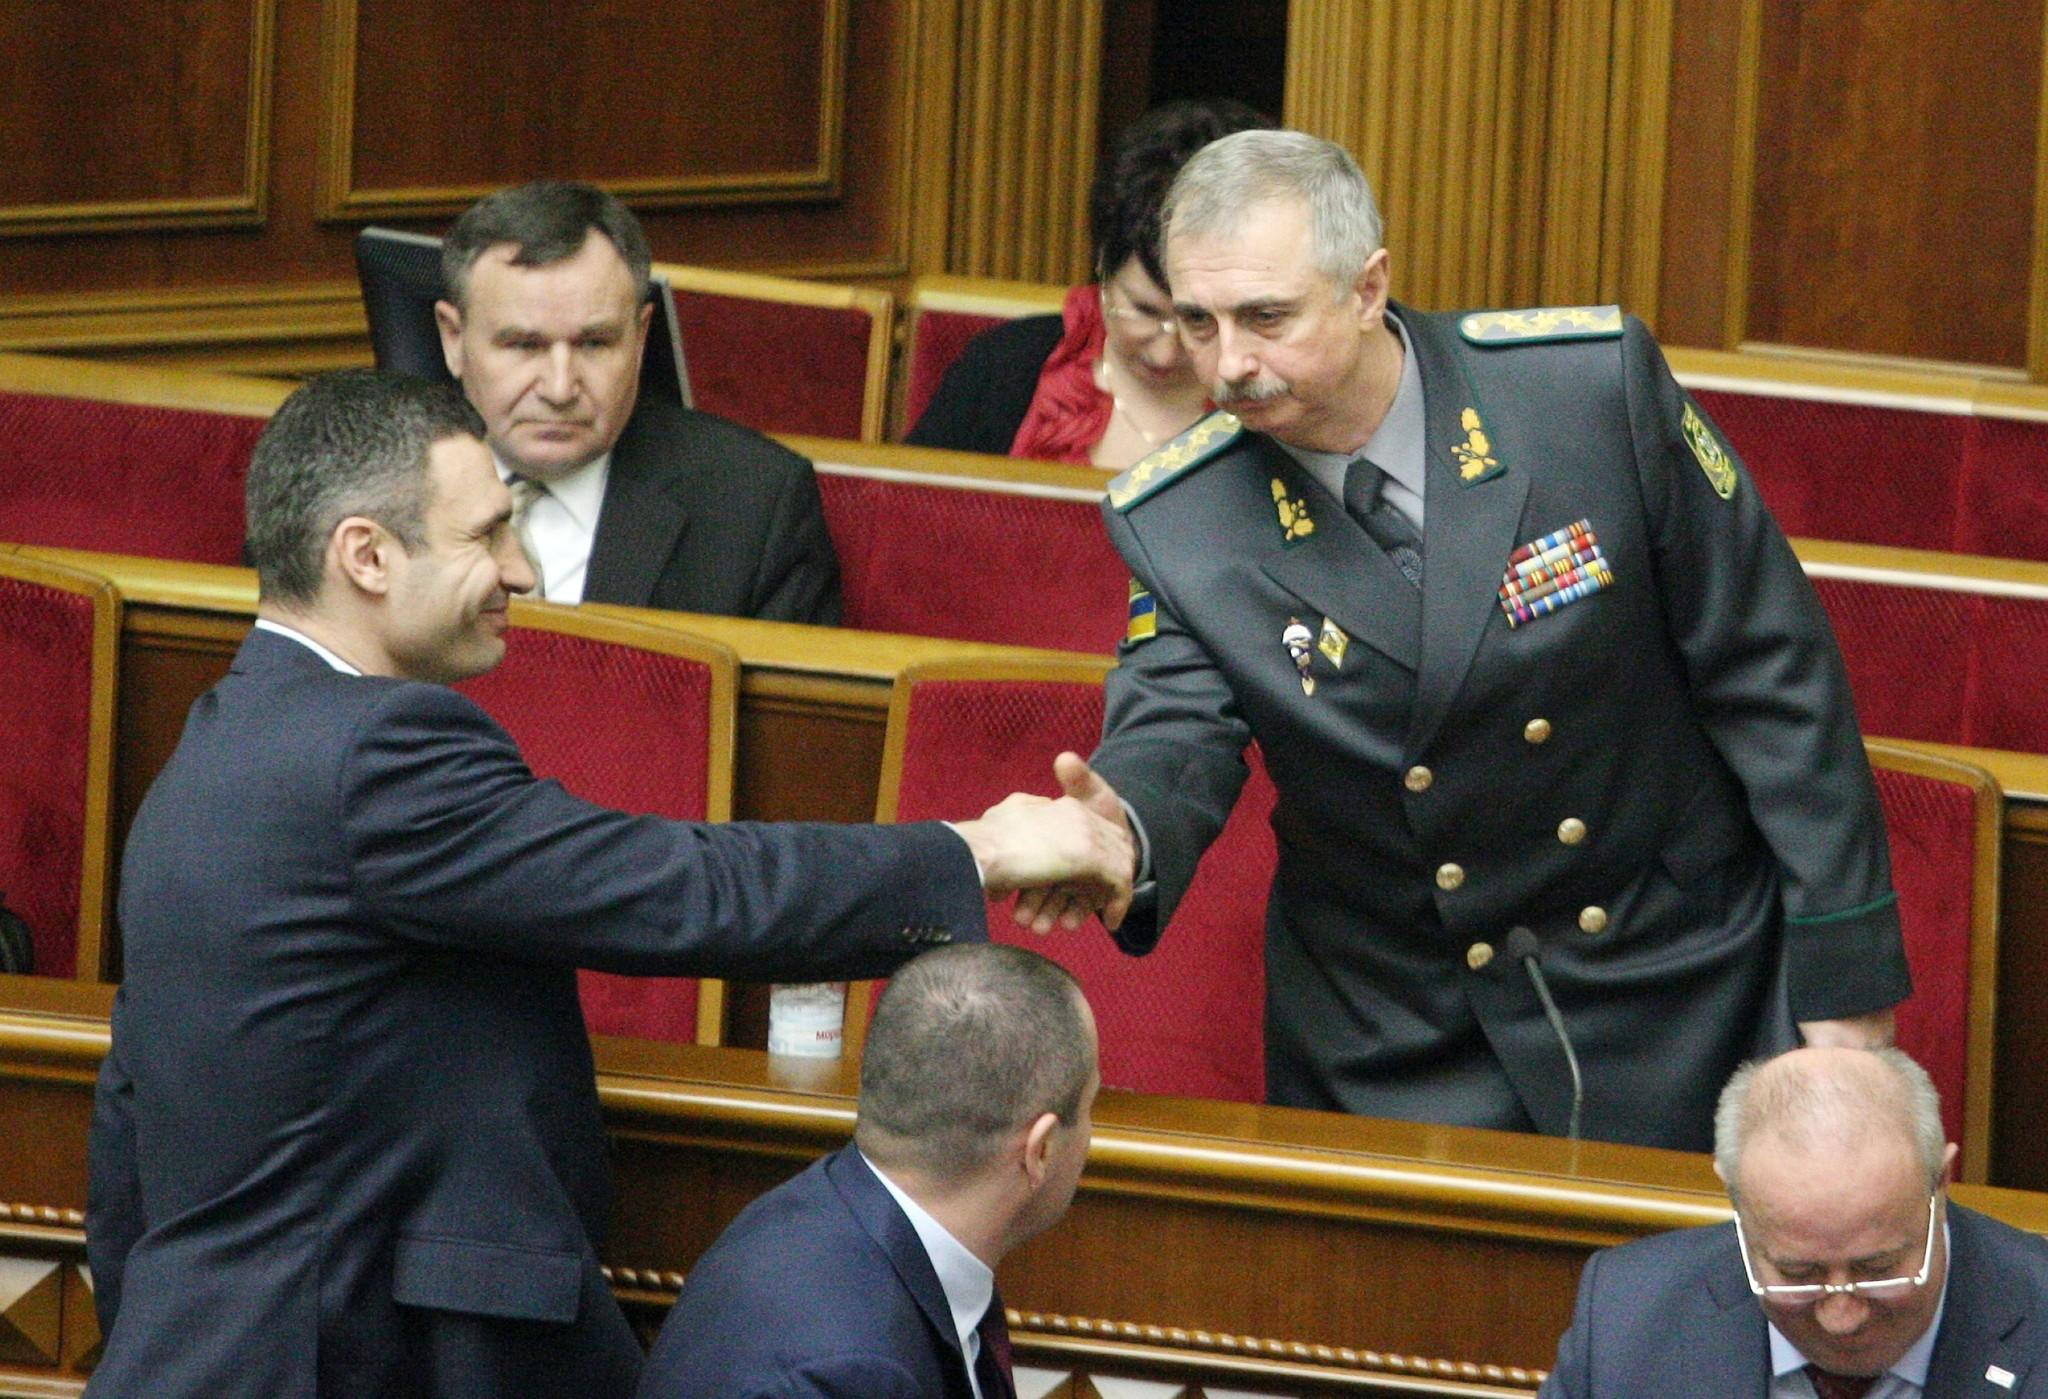 Ukrainian politician and former boxing champion Vitali Klitschko, left, shakes hands with newly appointed acting Defense Minister Mykhailo Koval on Tuesday in Kiev during a session of parliament.